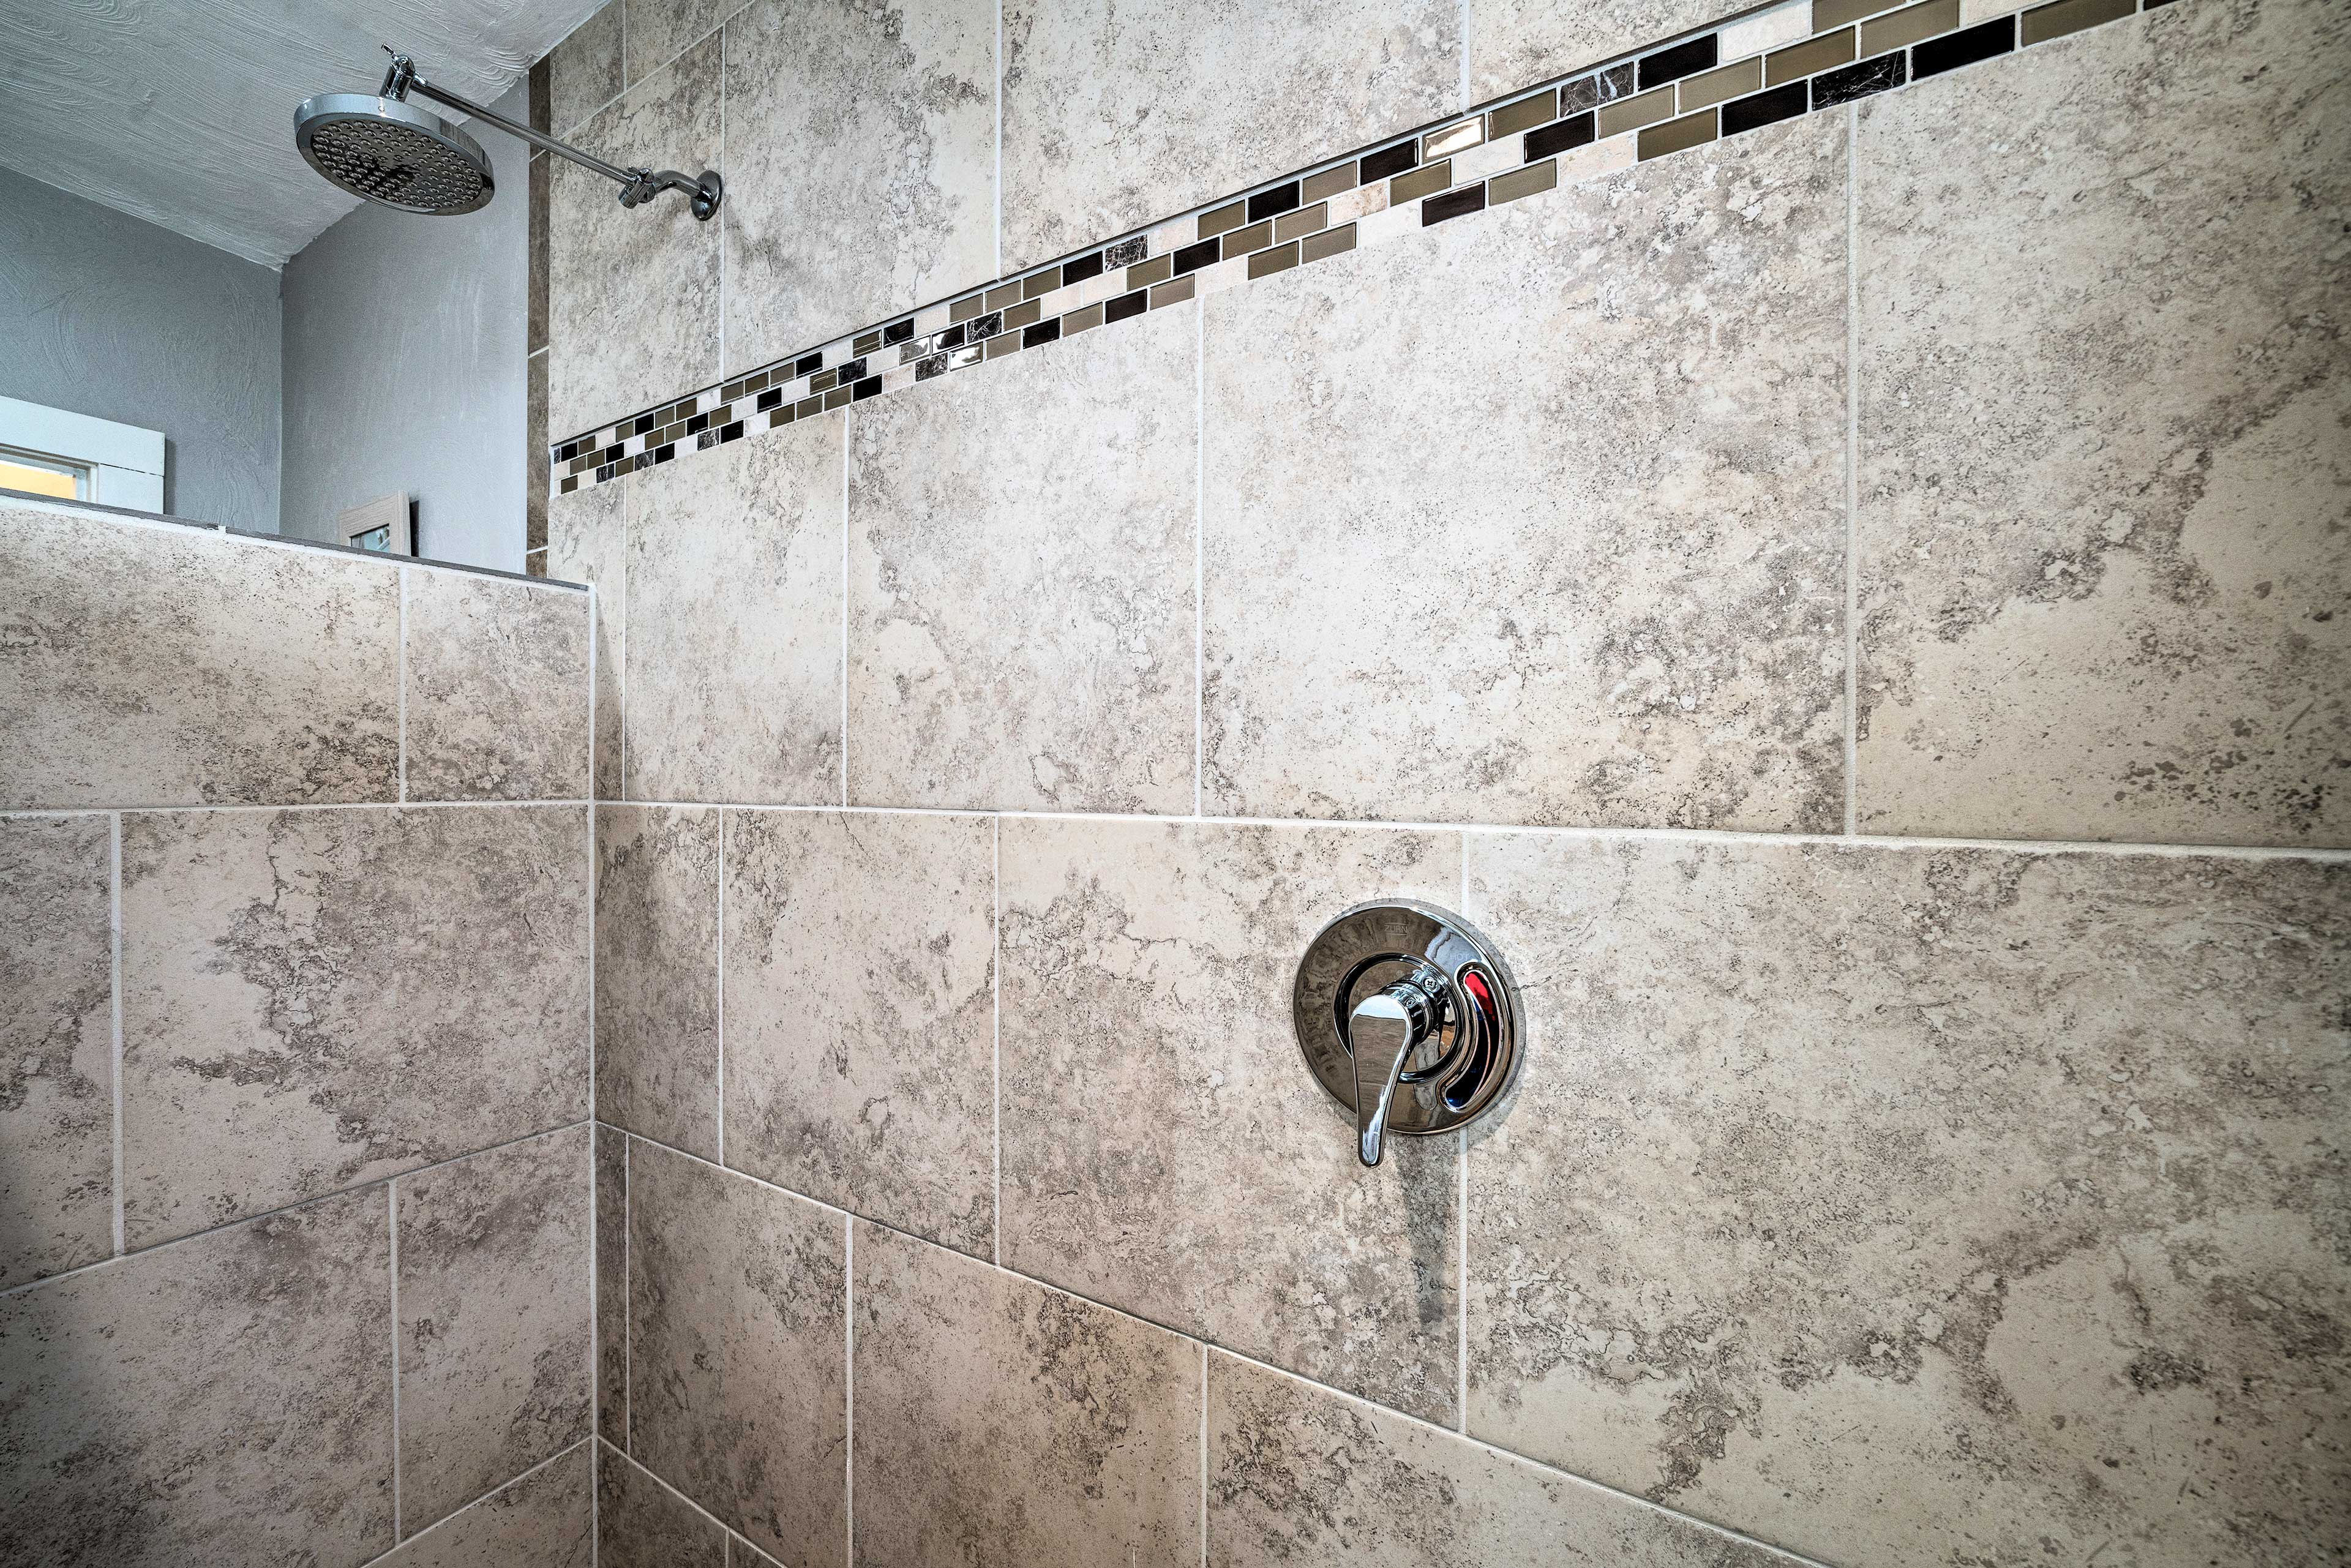 The rainfall shower head is a luxurious way to rinse off after a day outside.